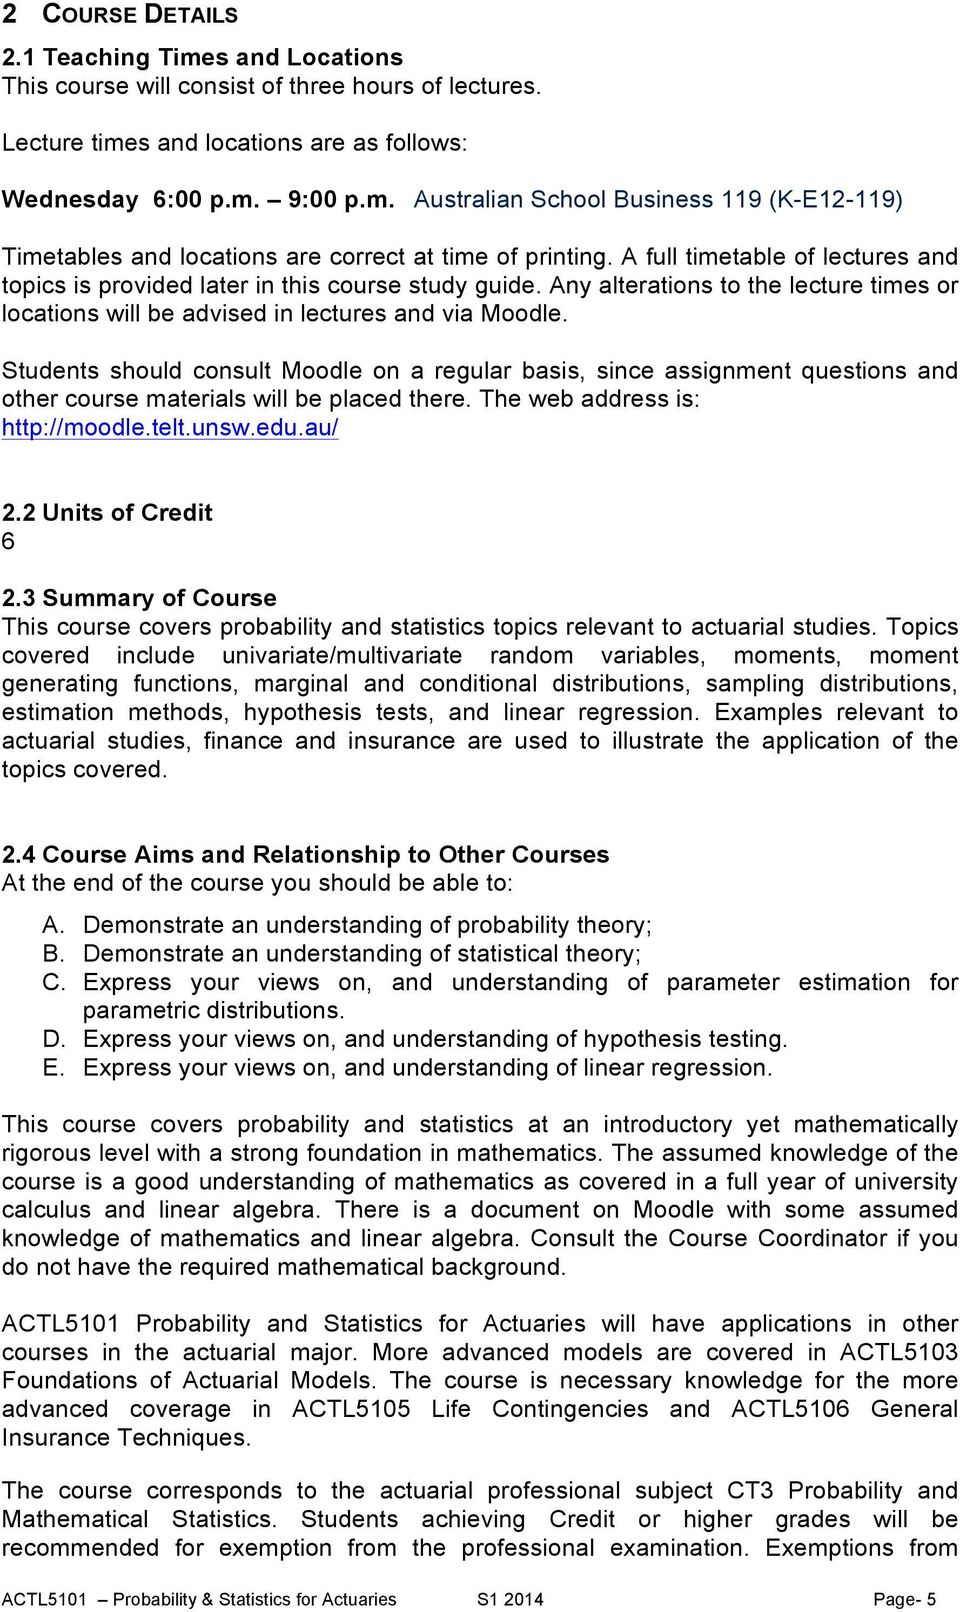 Students should consult Moodle on a regular basis, since assignment questions and other course materials will be placed there. The web address is: http://moodle.telt.unsw.edu.au/ 2.